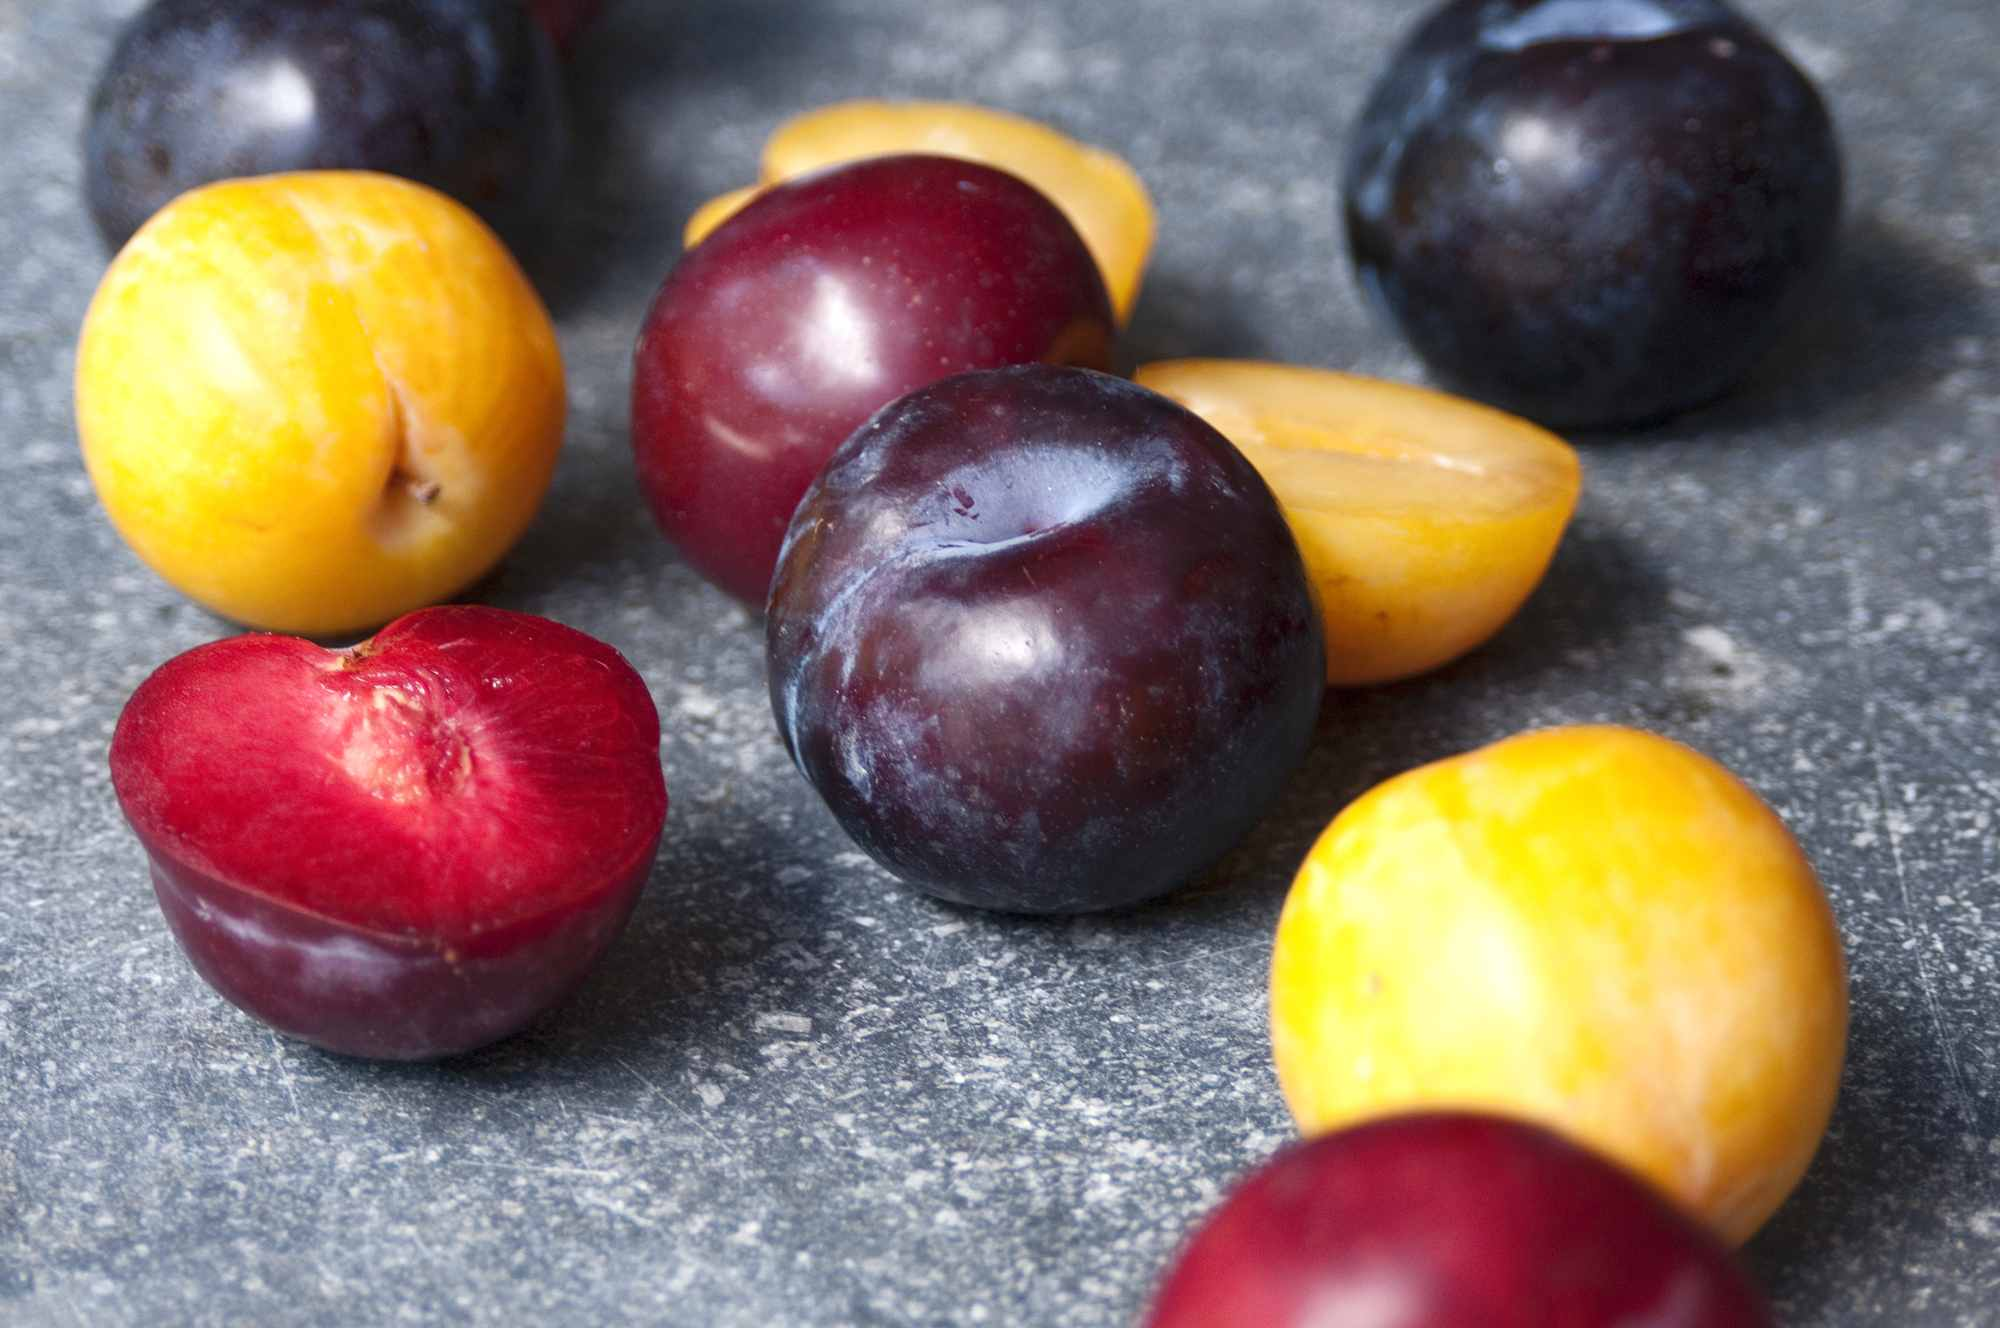 Plums image fruit recipes food cooking receipts